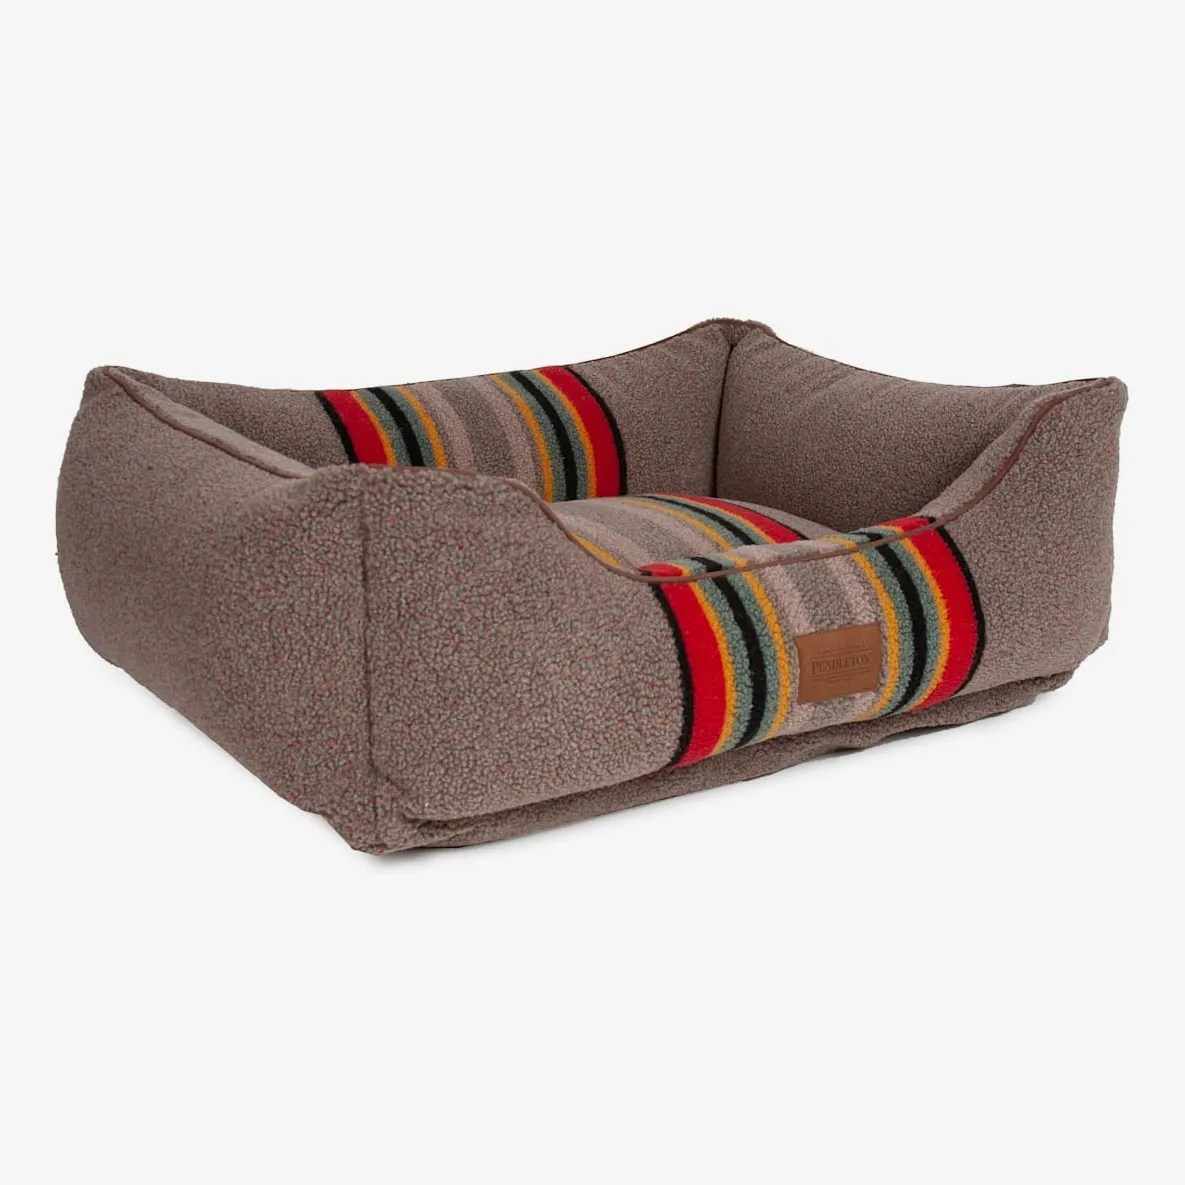 best dog beds according to dog experts